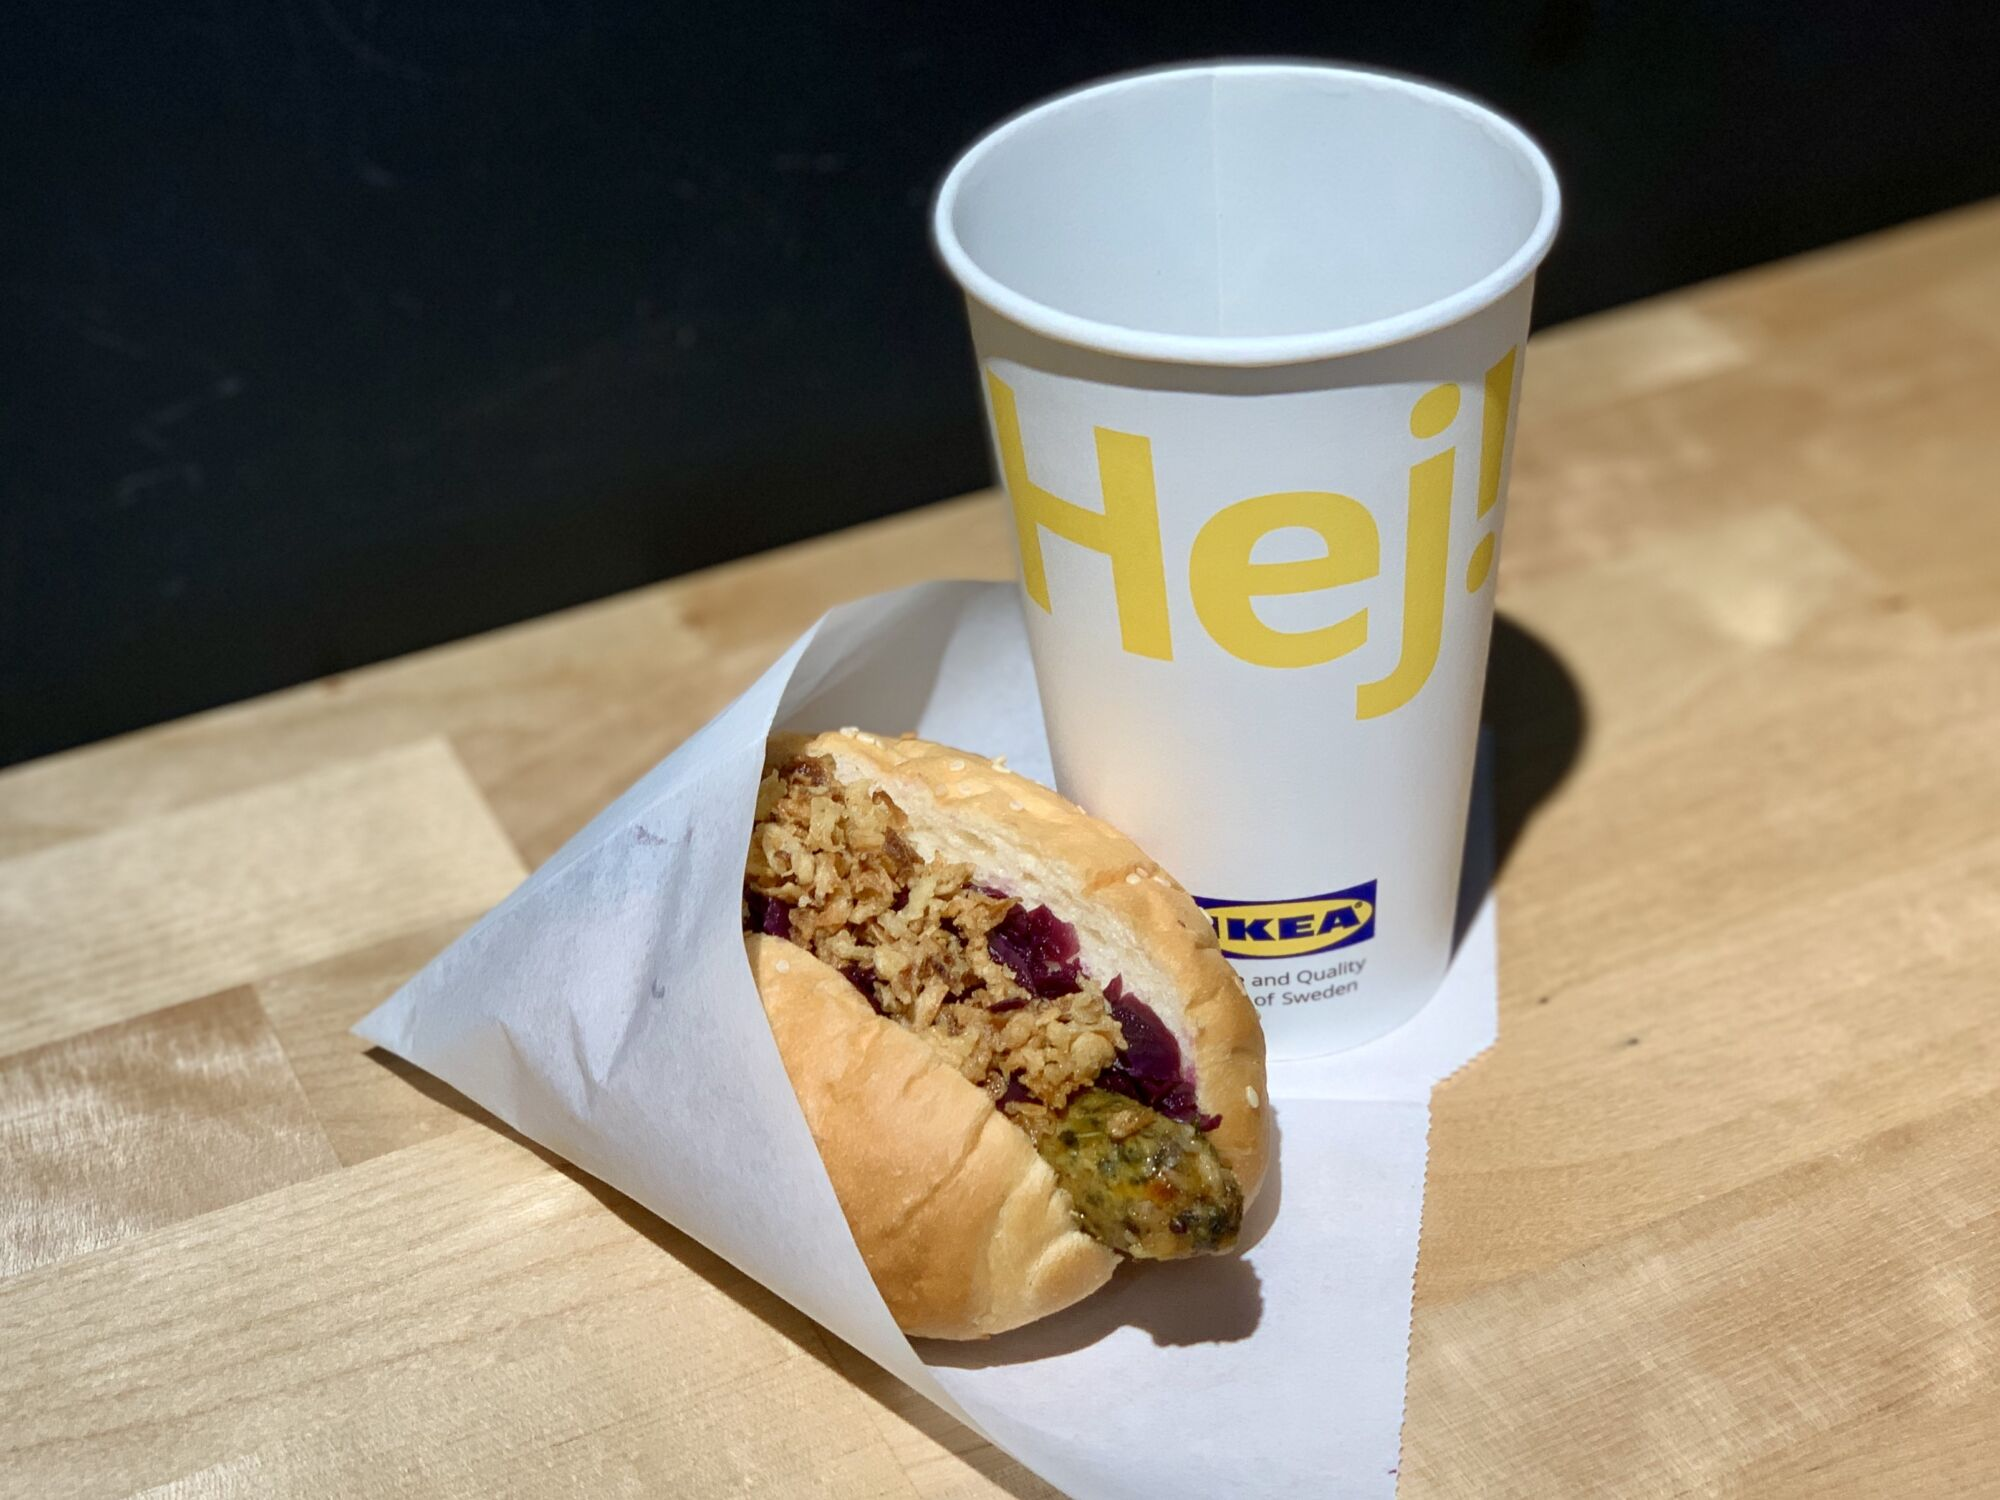 IKEA Vegetarian Hot Dog with Cup on the side Macau Lifestyle